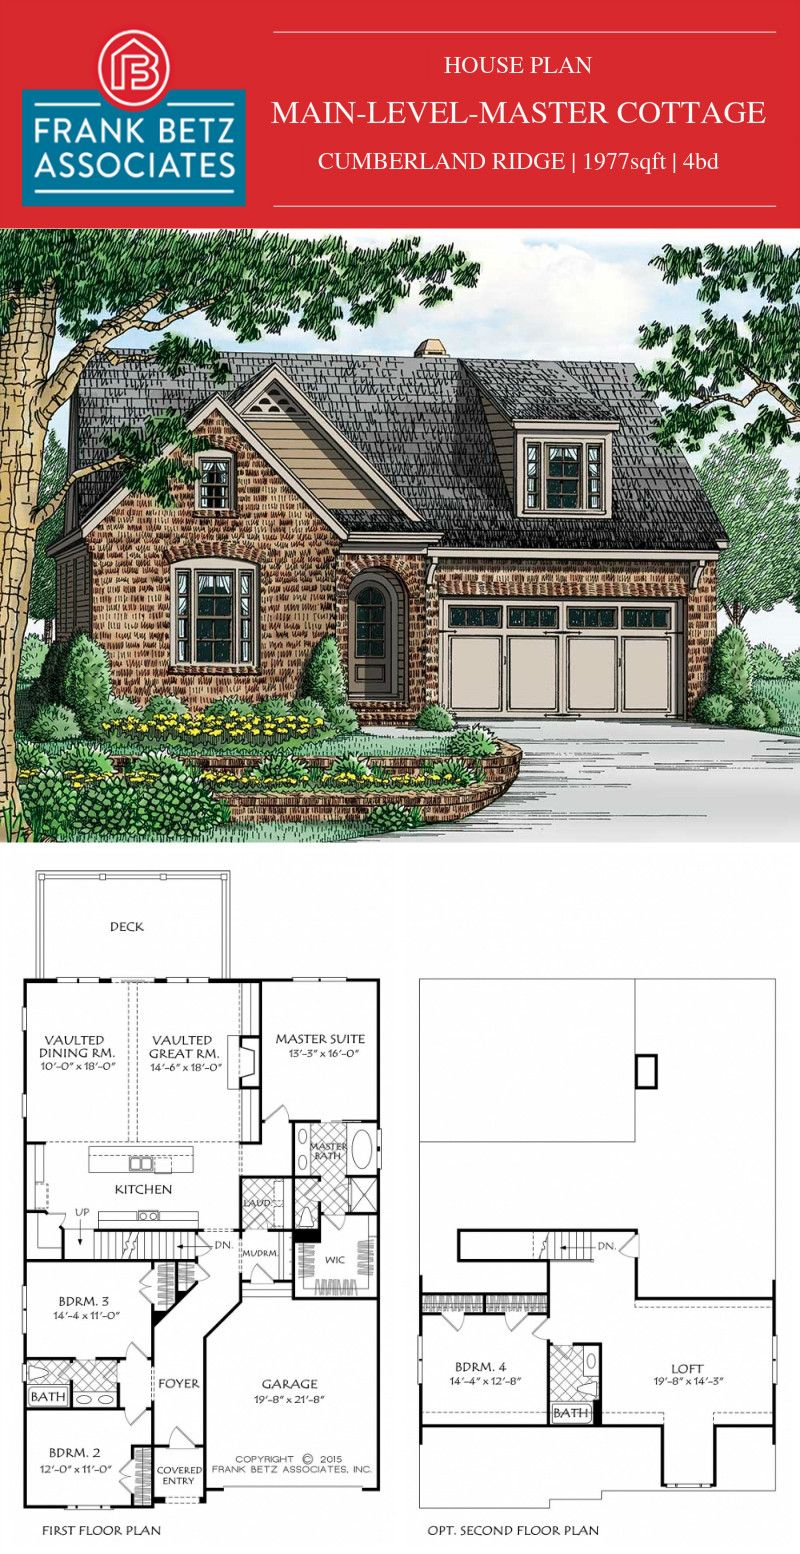 Cumberland Ridge Is A Cottage Style Mainlevelmaster Frankbetz Plan That Has An Cottage House Plans House Floor Plans Floor Plans